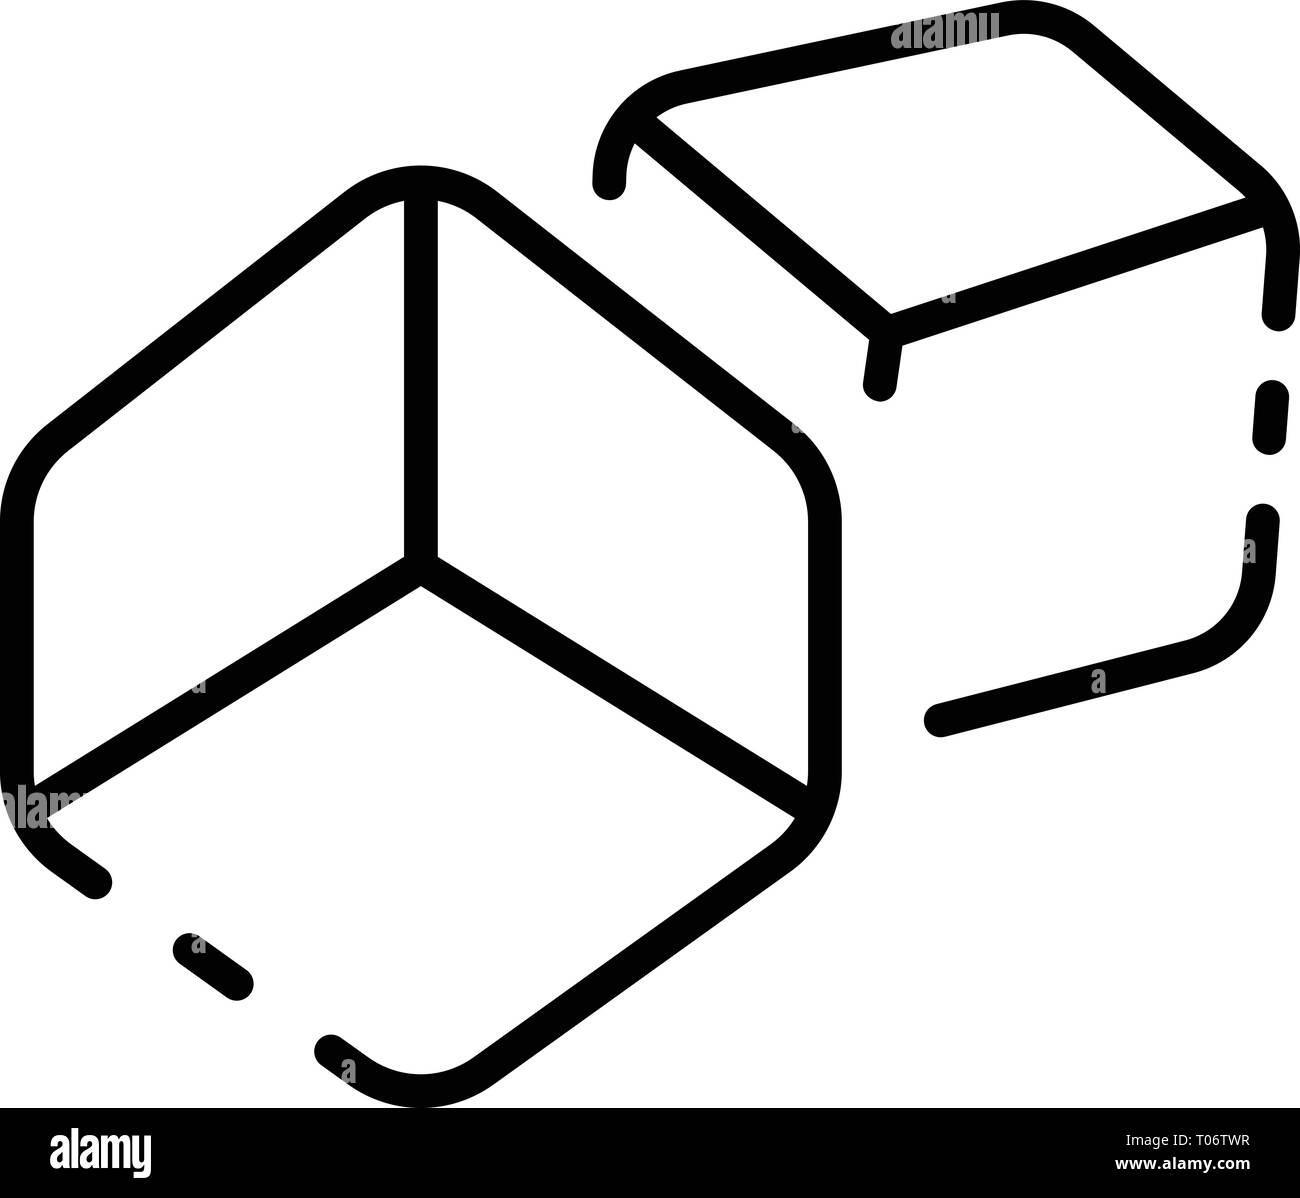 Cube toy icon, outline style Stock Vector Art & Illustration